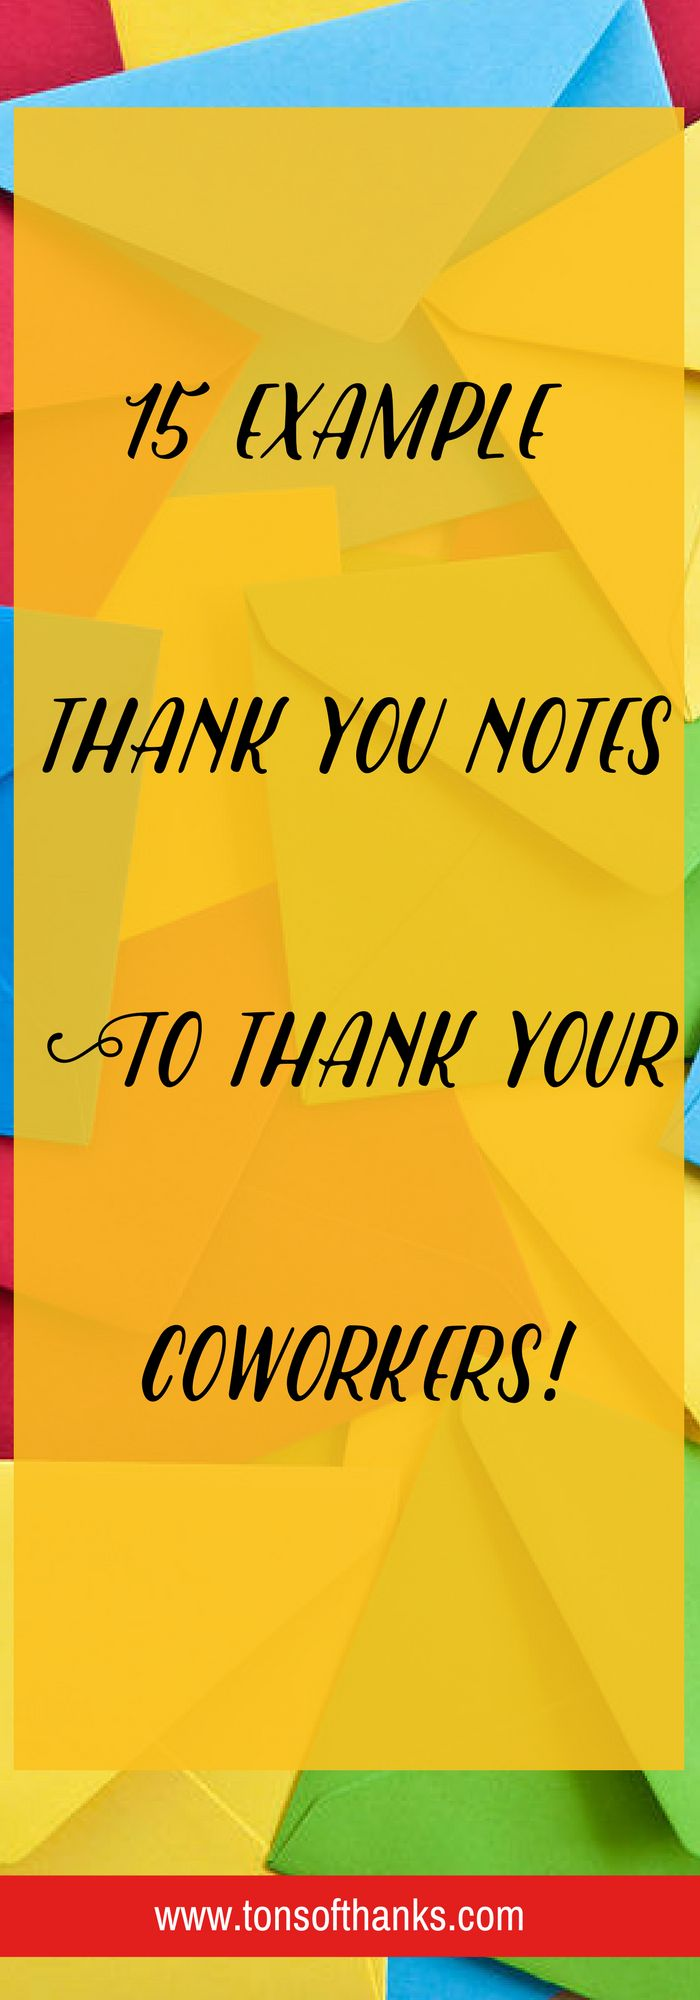 47 best Thank you note ideas images on Pinterest  Ideas party